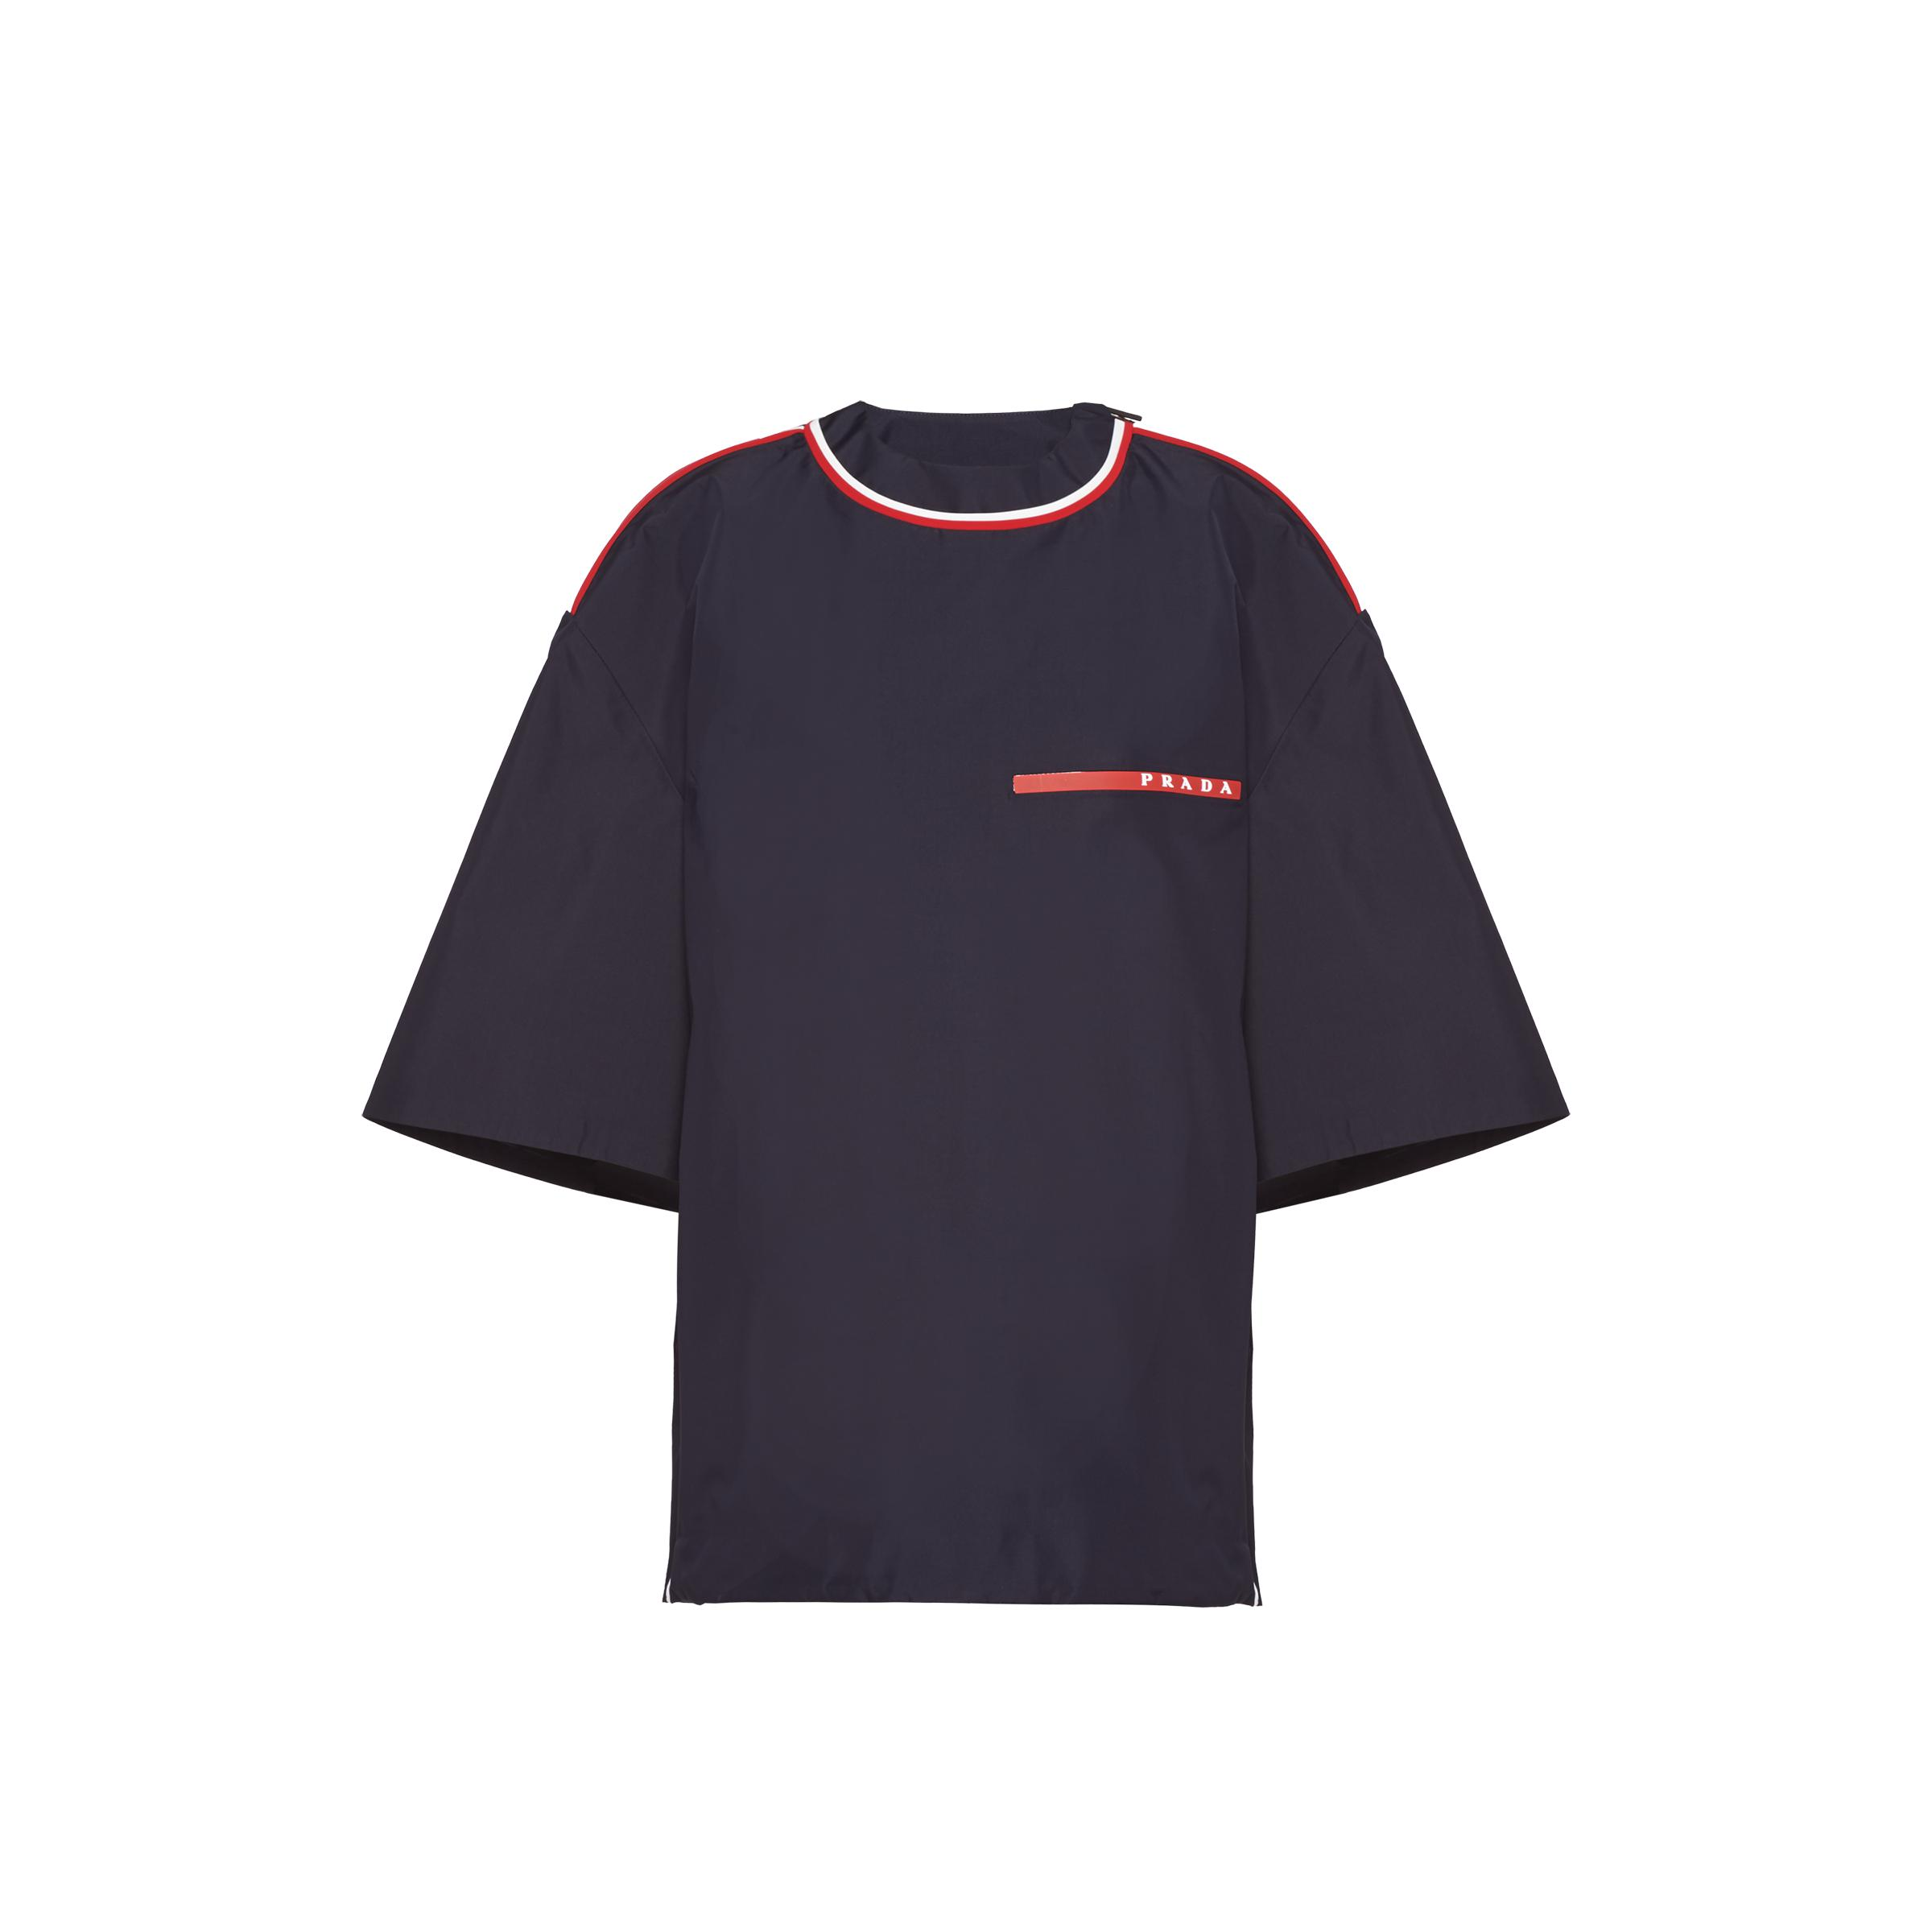 Extreme-tex Short-sleeved Top Women Navy Blue/chalk White/red